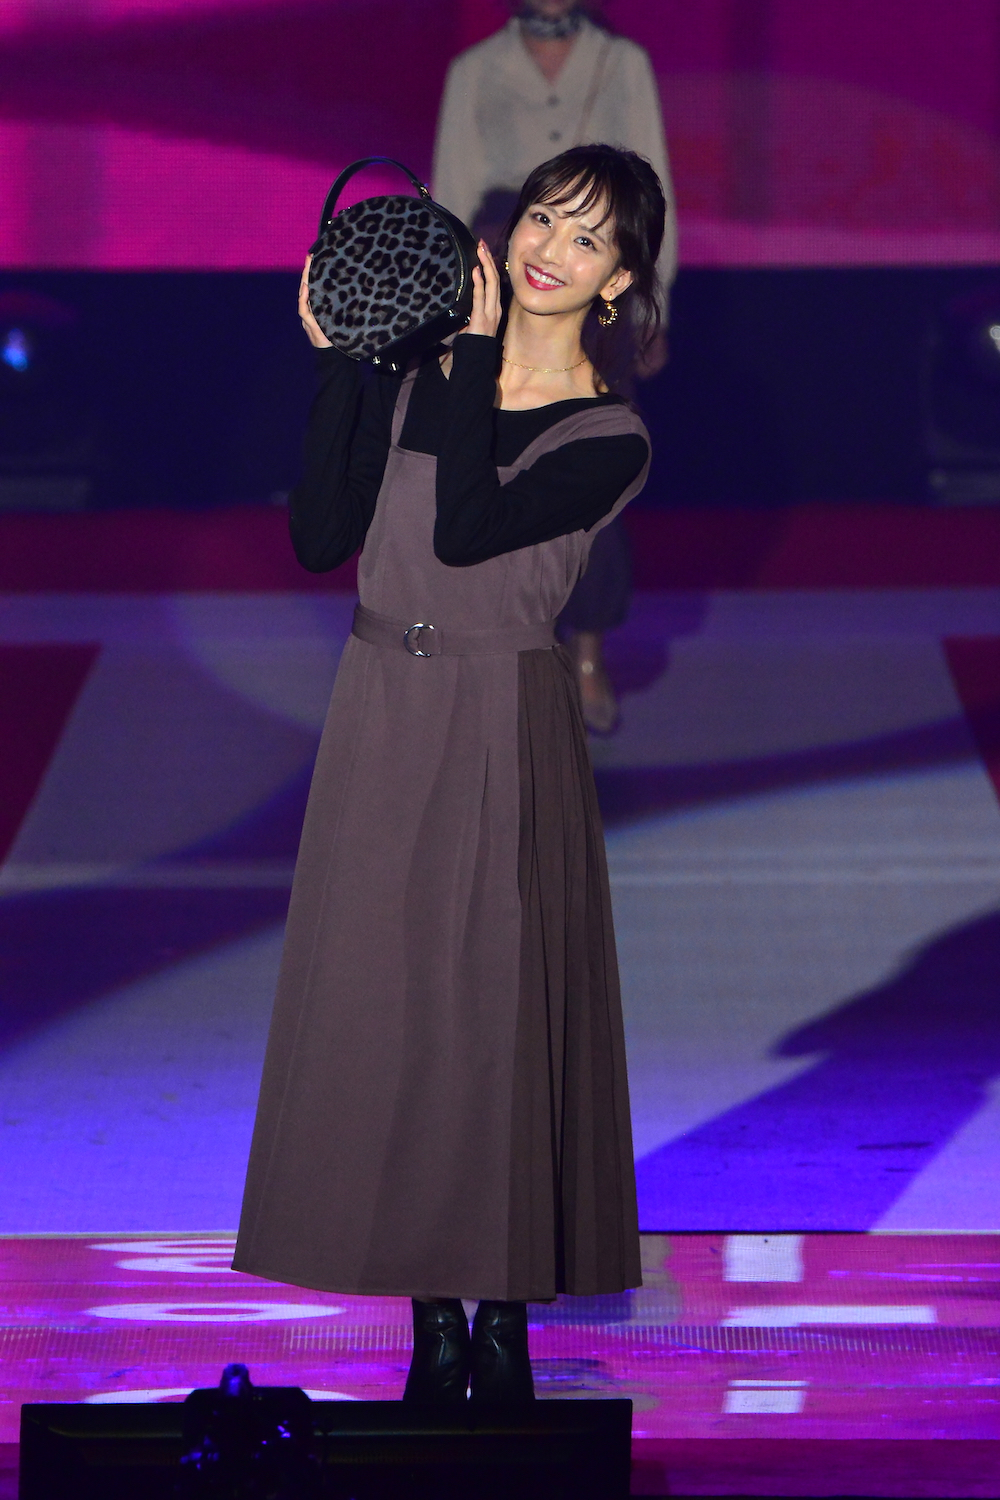 佐藤楓 乃木坂46(GirlsAward 2019 AUTUMN/WINTER)